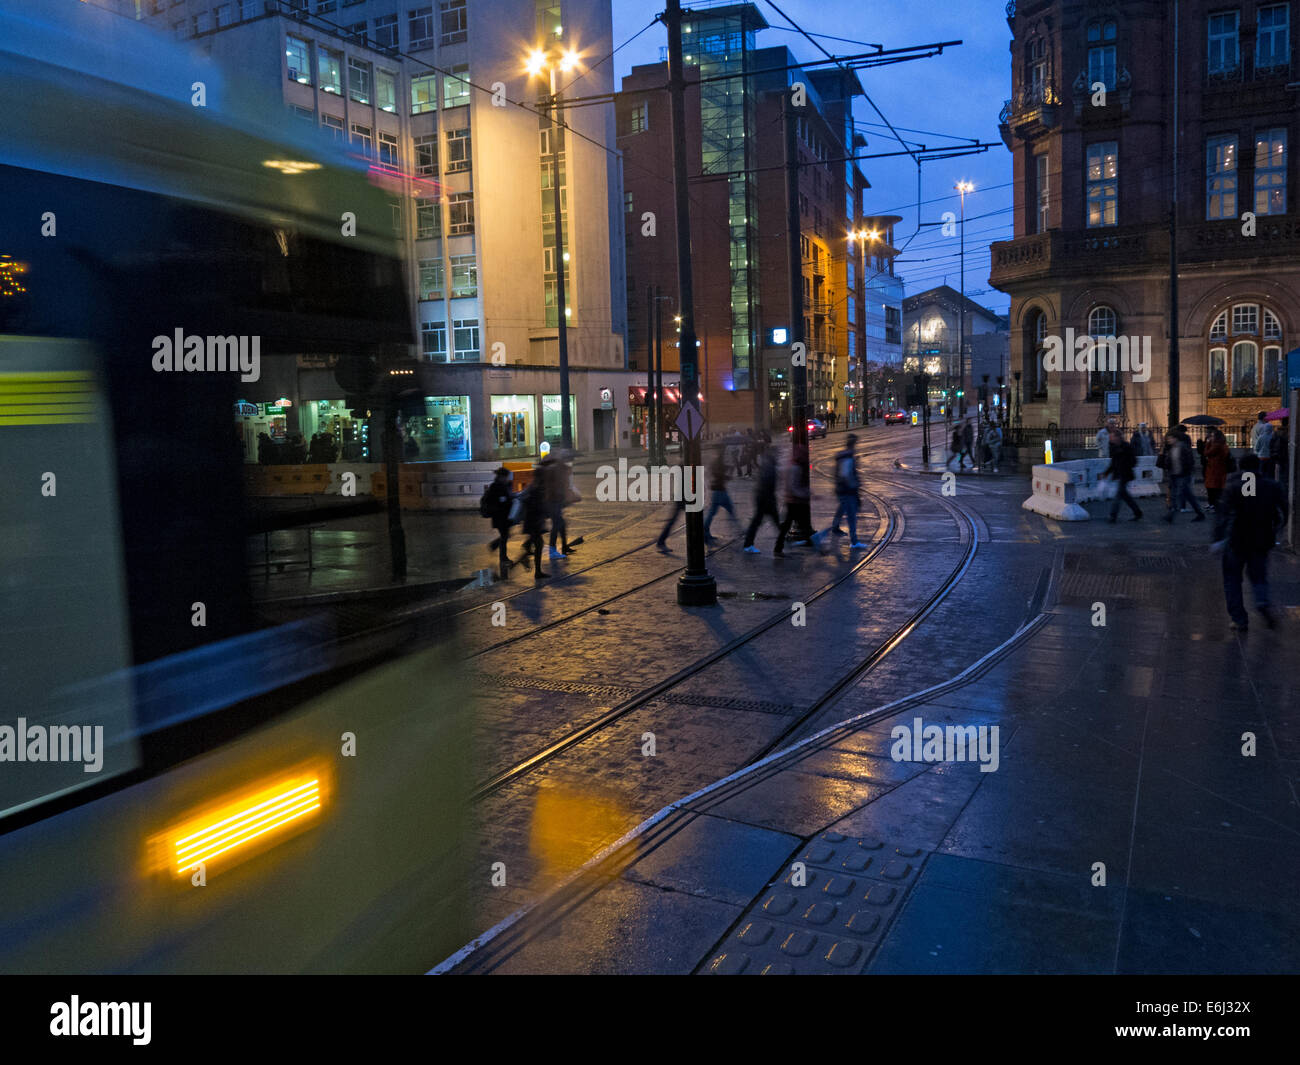 night,light,rail,system,in,Greater,Manchester,RAPT,six,lines,city,centre,Altrincham,Ashton-under-Lyne,Bury,Didsbury,Eccles,and,Rochdale,TFGM,TEGM,metrolink,integrated,and,efficient,system,of,public,transport,light,rail,street-running,street,running,tram,standard-gauge,track,standard,guage,gotonysmith system systems integrated commuter service Bombardier Flexity Swift M5000s,but,also,used,Ansaldo,Firema,T-68/T-68As,T-68/T-68A,M5000,FlexitySwift,LRVs,LRV,aquamarine,identity,colour,colouring,3a,3b,2CC,phase,phases,tram-train,technology.,GMPTE,SELNEC,PTE,Passenger,Transport,Executive,British,rail,East,Lancashire,Railway,(Bury-to-Victoria),and,Manchester,South,Junction,and,Altrincham,Railway,network,GMA,Transport,and,Works,Act,1992,Salford,Quays,eccles,line,lines,European,Regional,Development,Fund,little,mini,bang,TMS,thales,3a,services,mediacityUK,mediacity,UK,serco,Stagecoach,dev,Peter,cushing,Fitch,RS,and,Design,Triangle,Hemisphere,Design,and,Marketing,Consultancy,Peter,Saville,Dalton Maag and Design Triangle M5000 systems operator system,Buy Pictures of,Buy Images Of